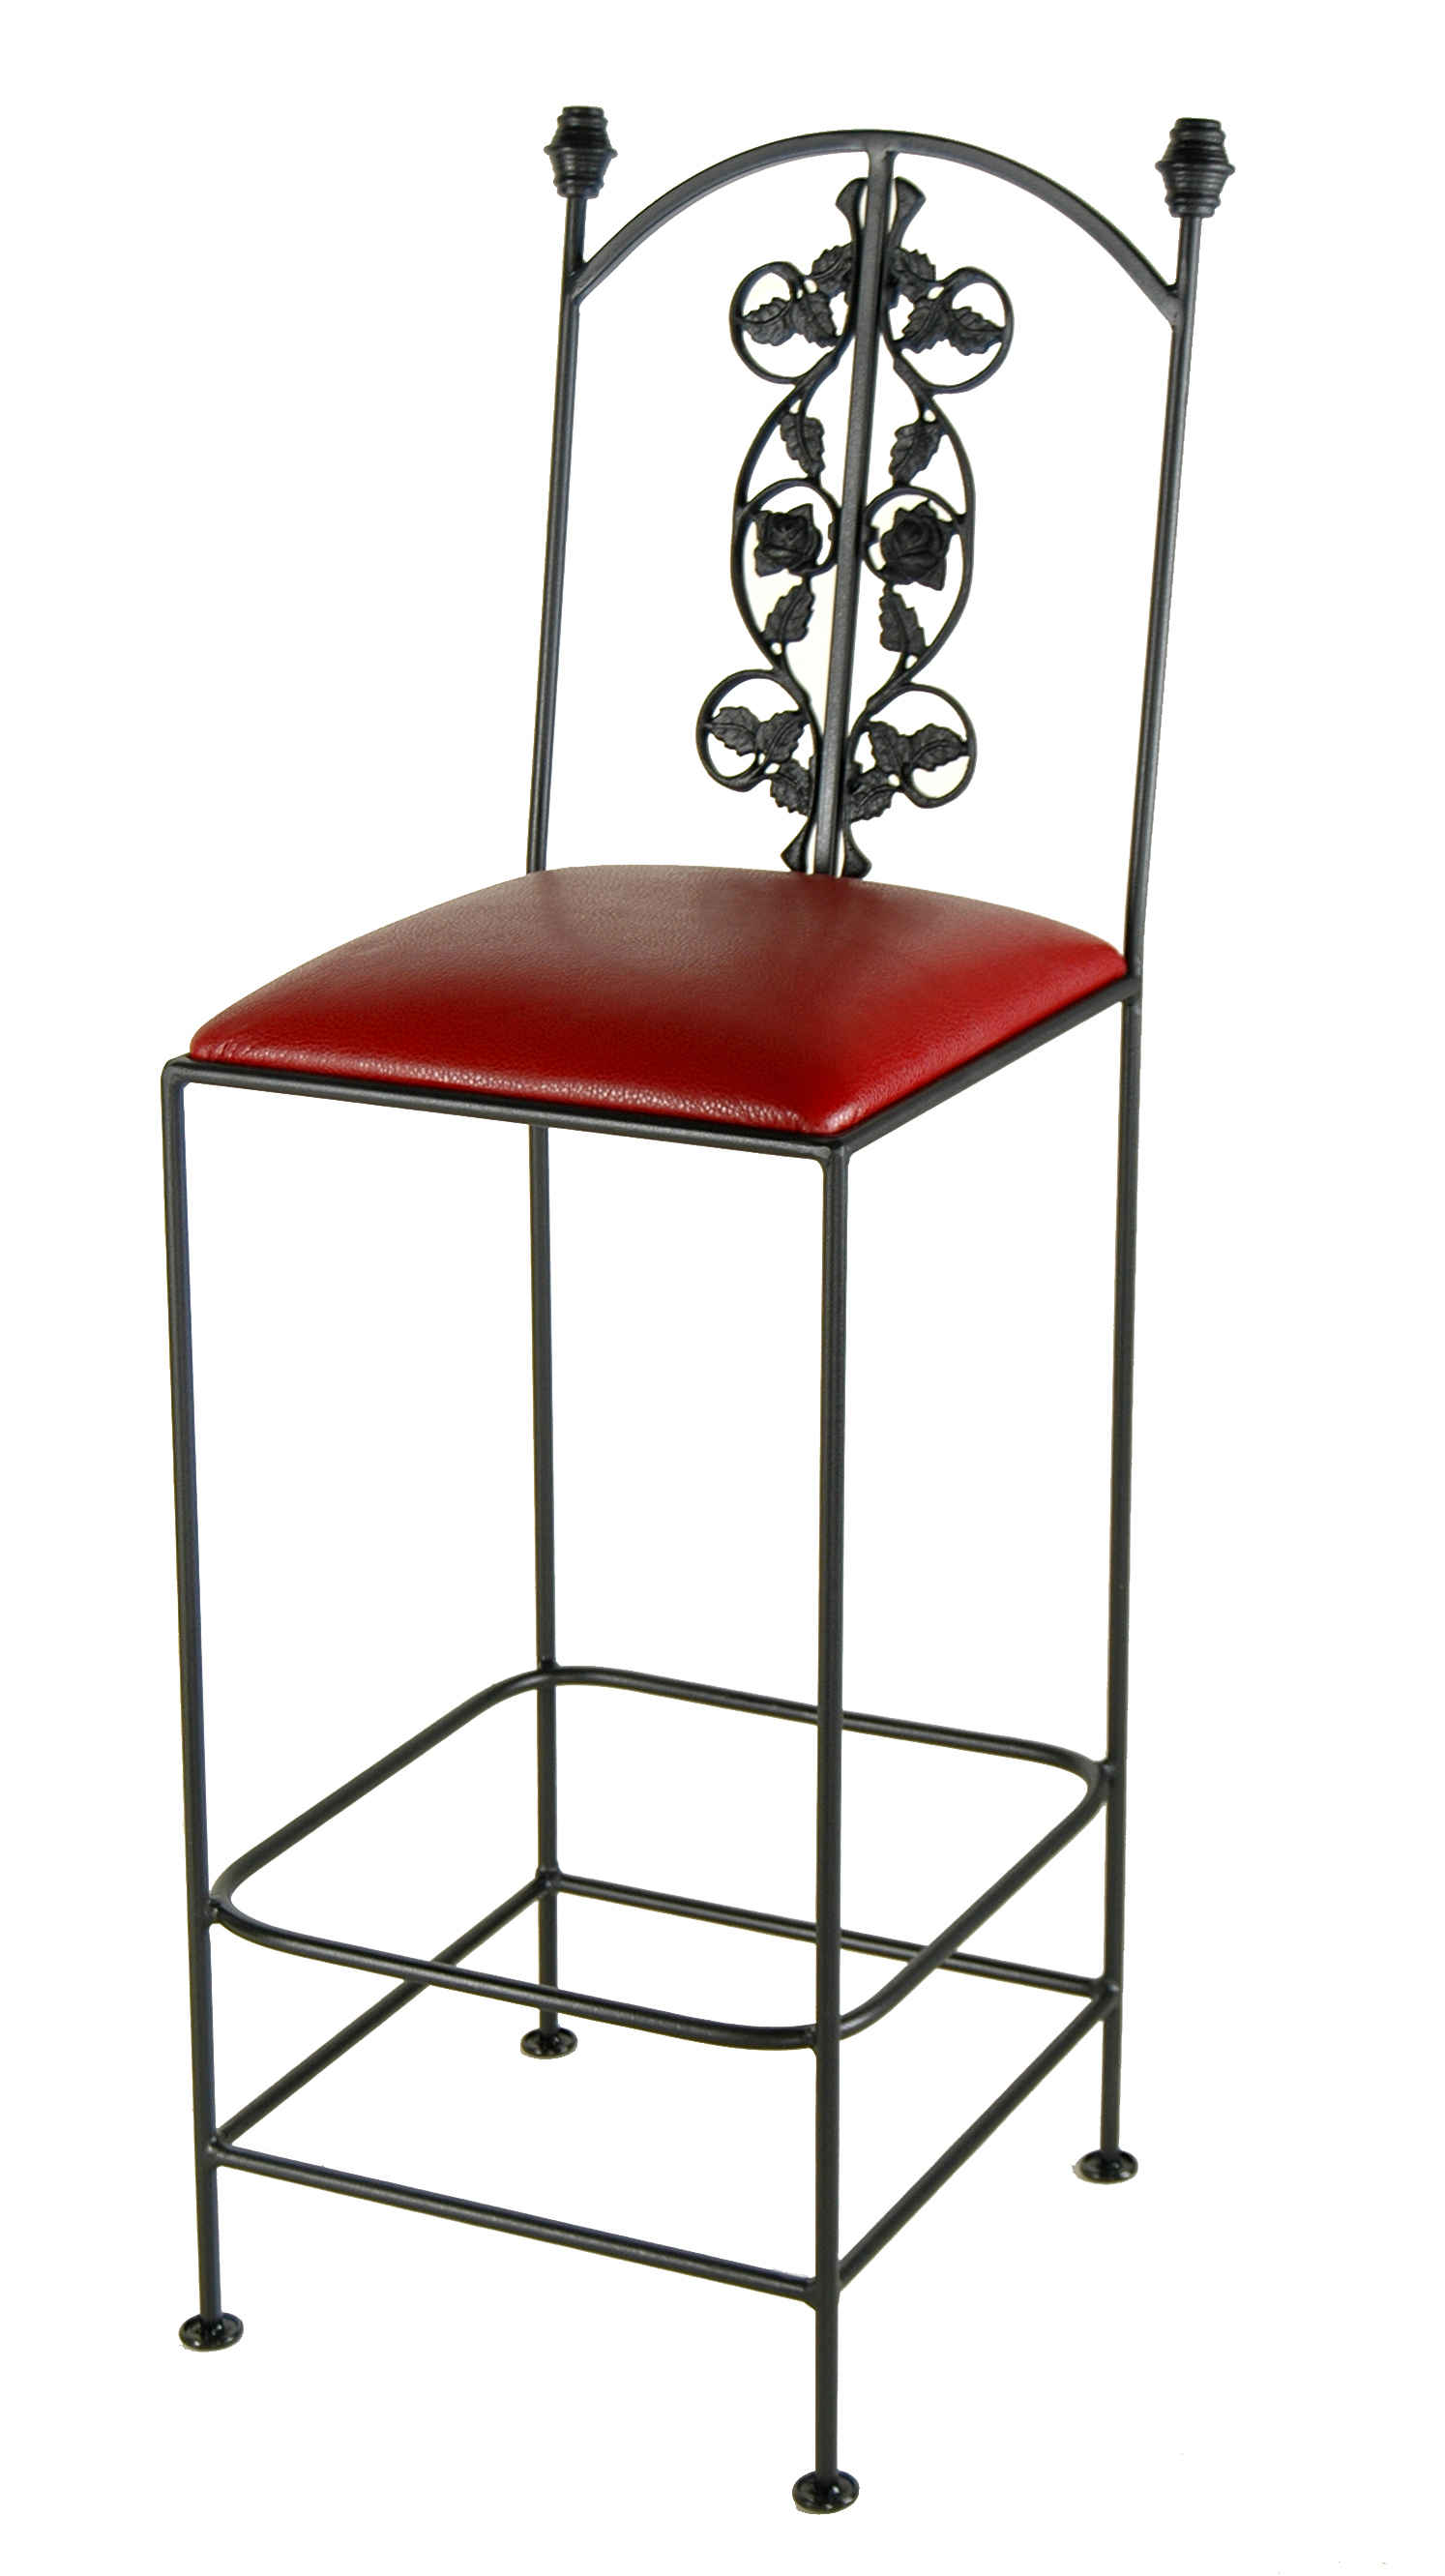 Marvelous Metal Bar Stool Manufacturer Wholesale Gamerscity Chair Design For Home Gamerscityorg